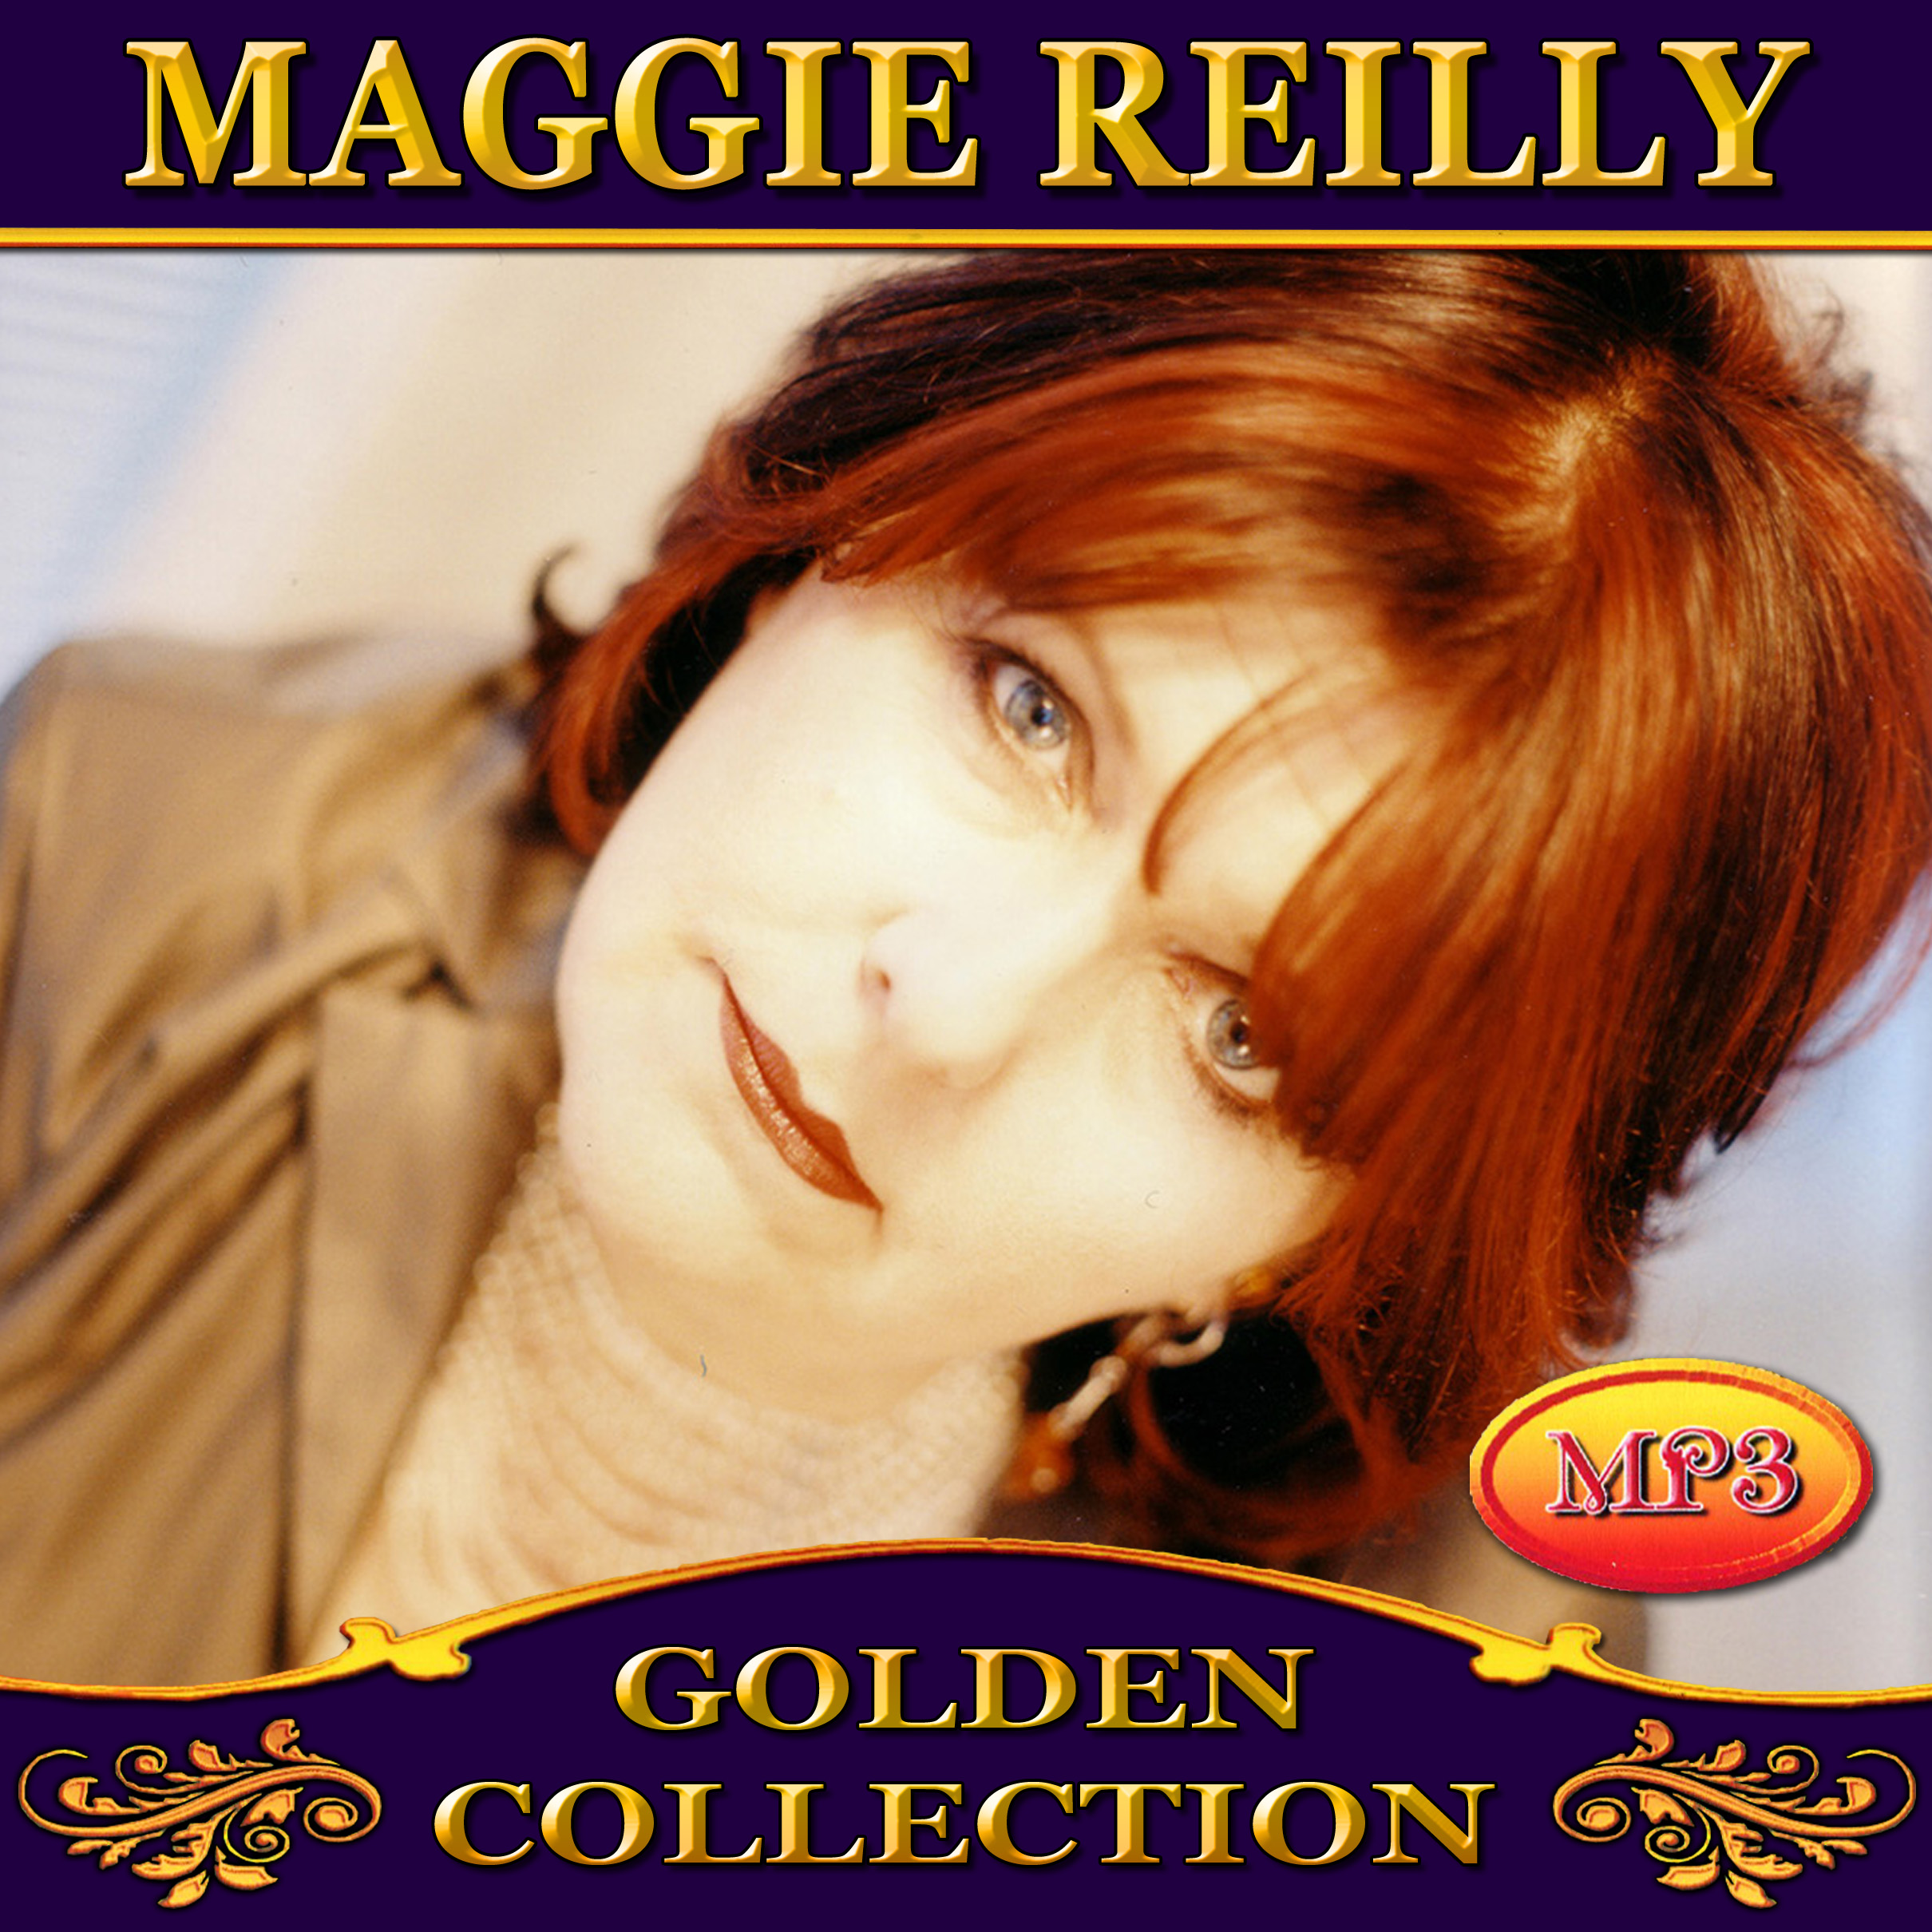 Maggie Reilly [mp3]